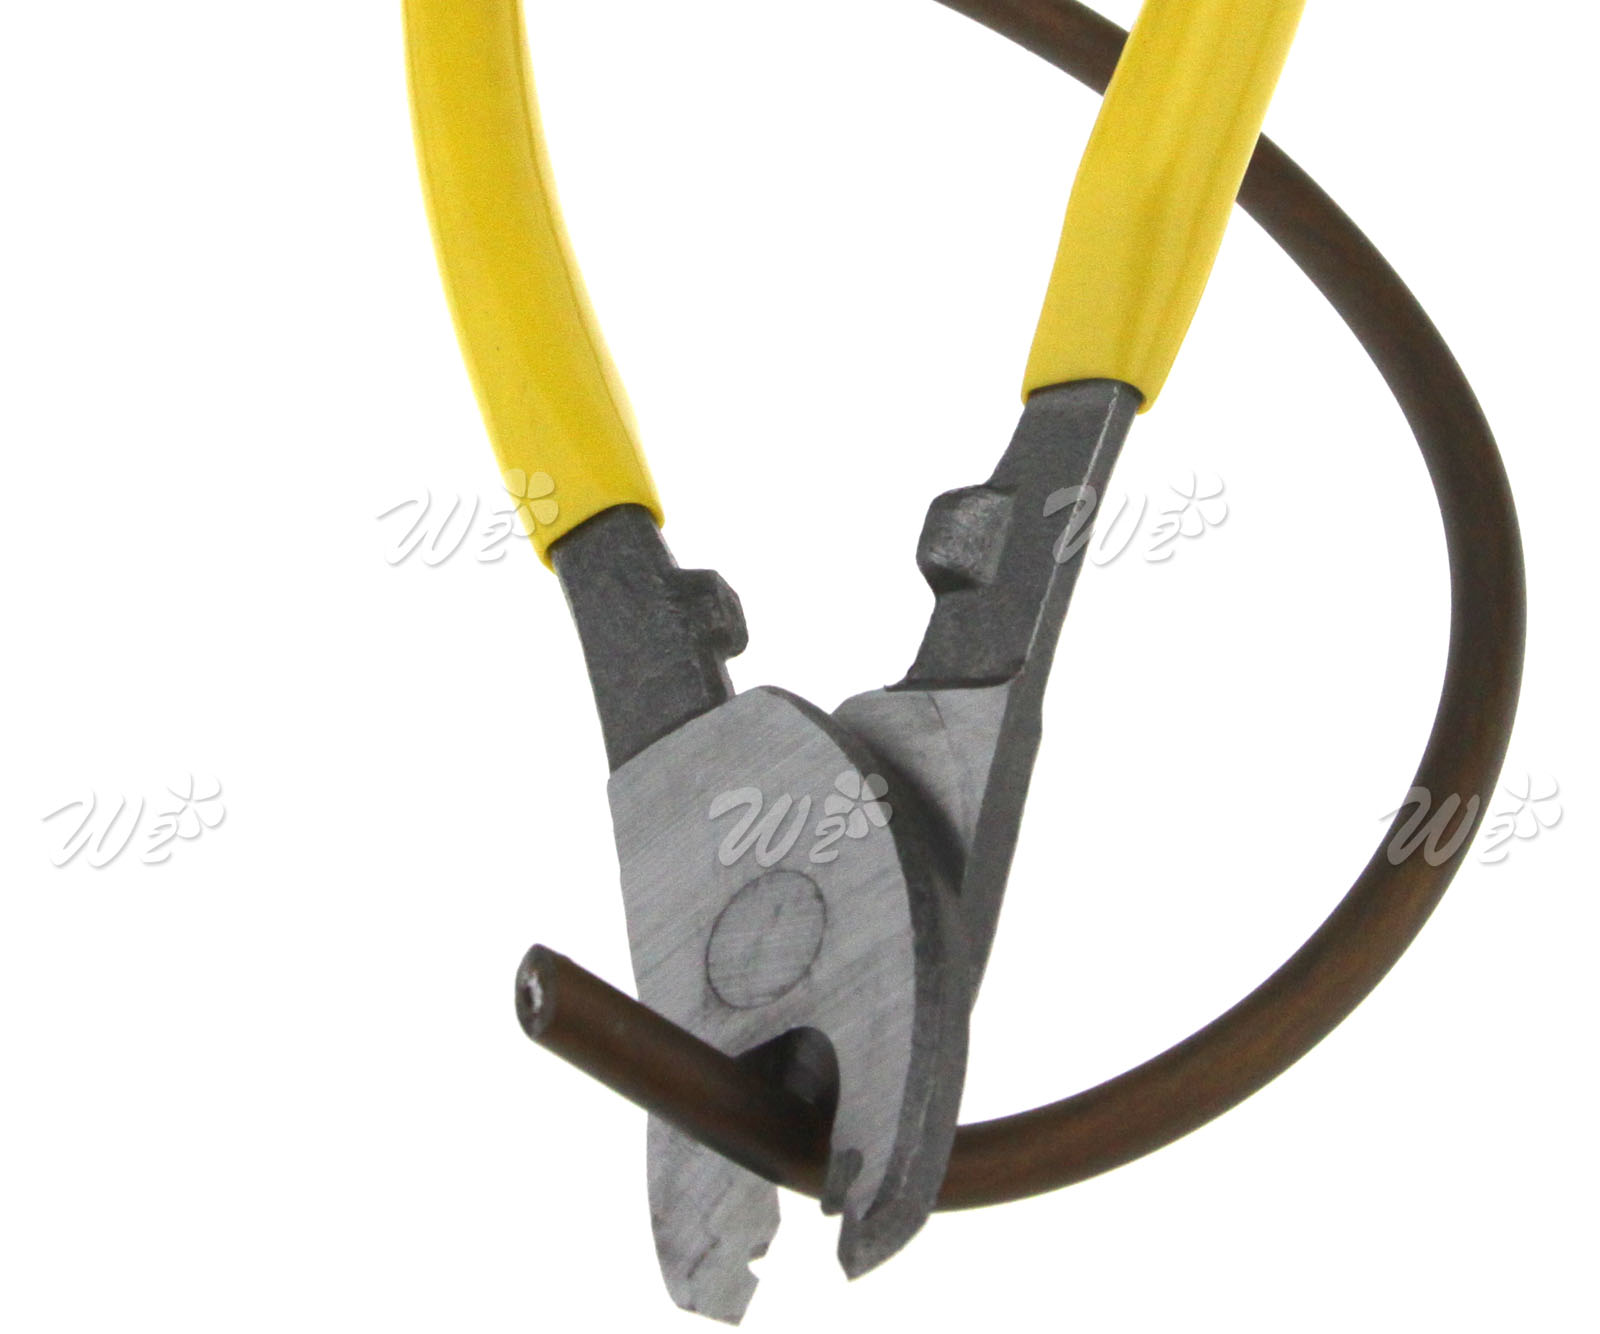 8 Quot 200mm Electric Cable Wire Strippers Electrician Plier